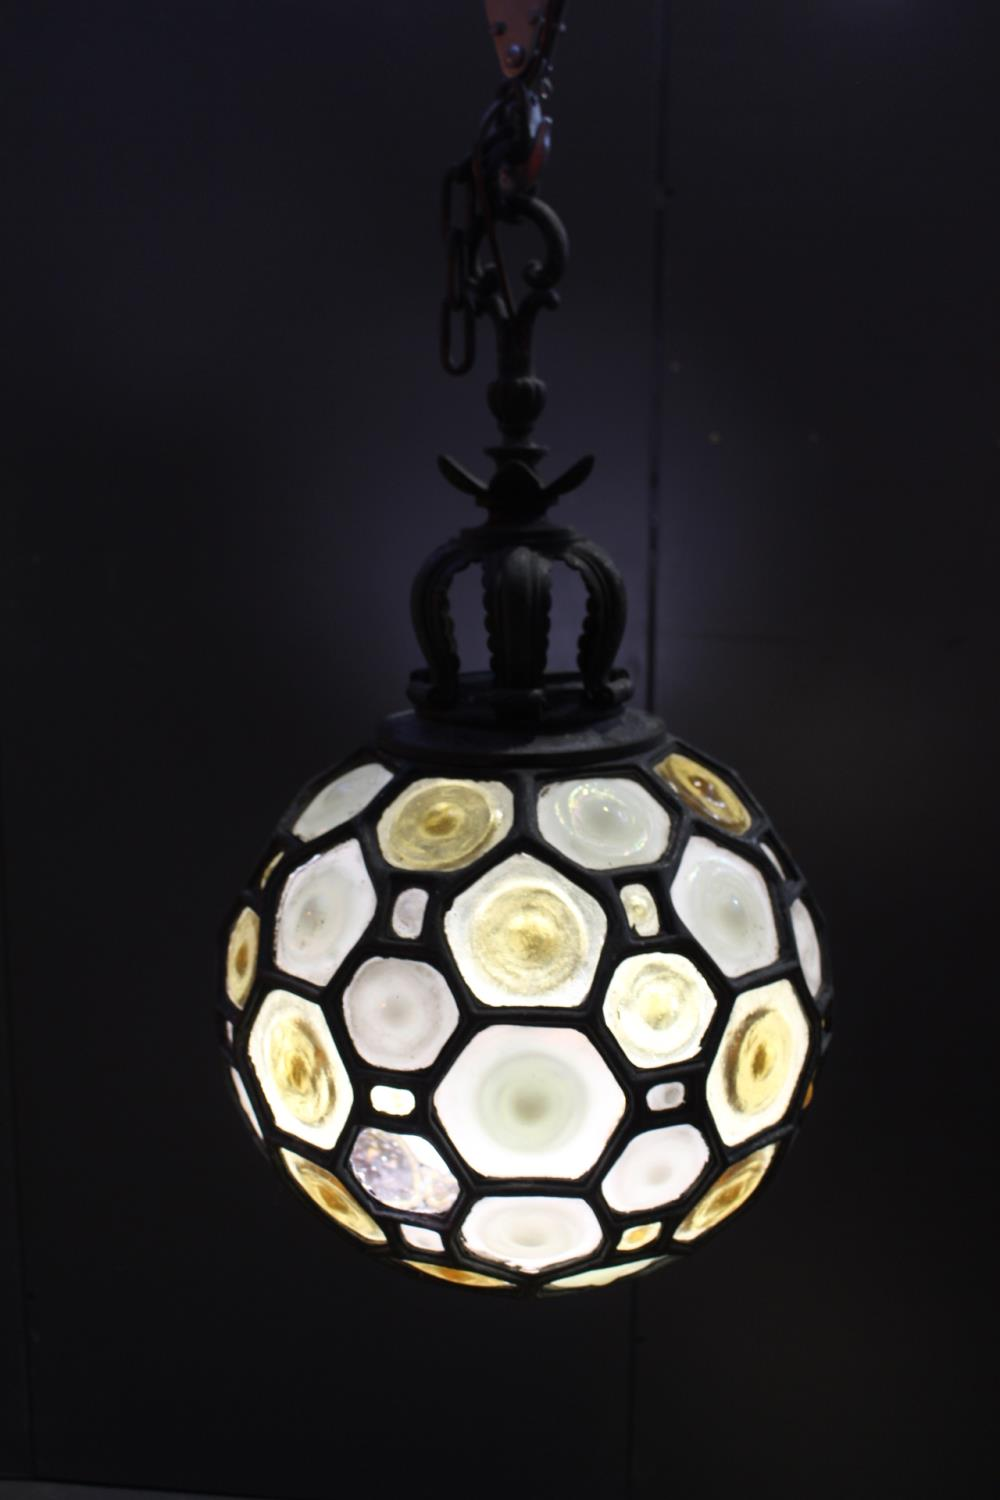 Wrought iron Bulls eye glass ceiling light - Image 2 of 2